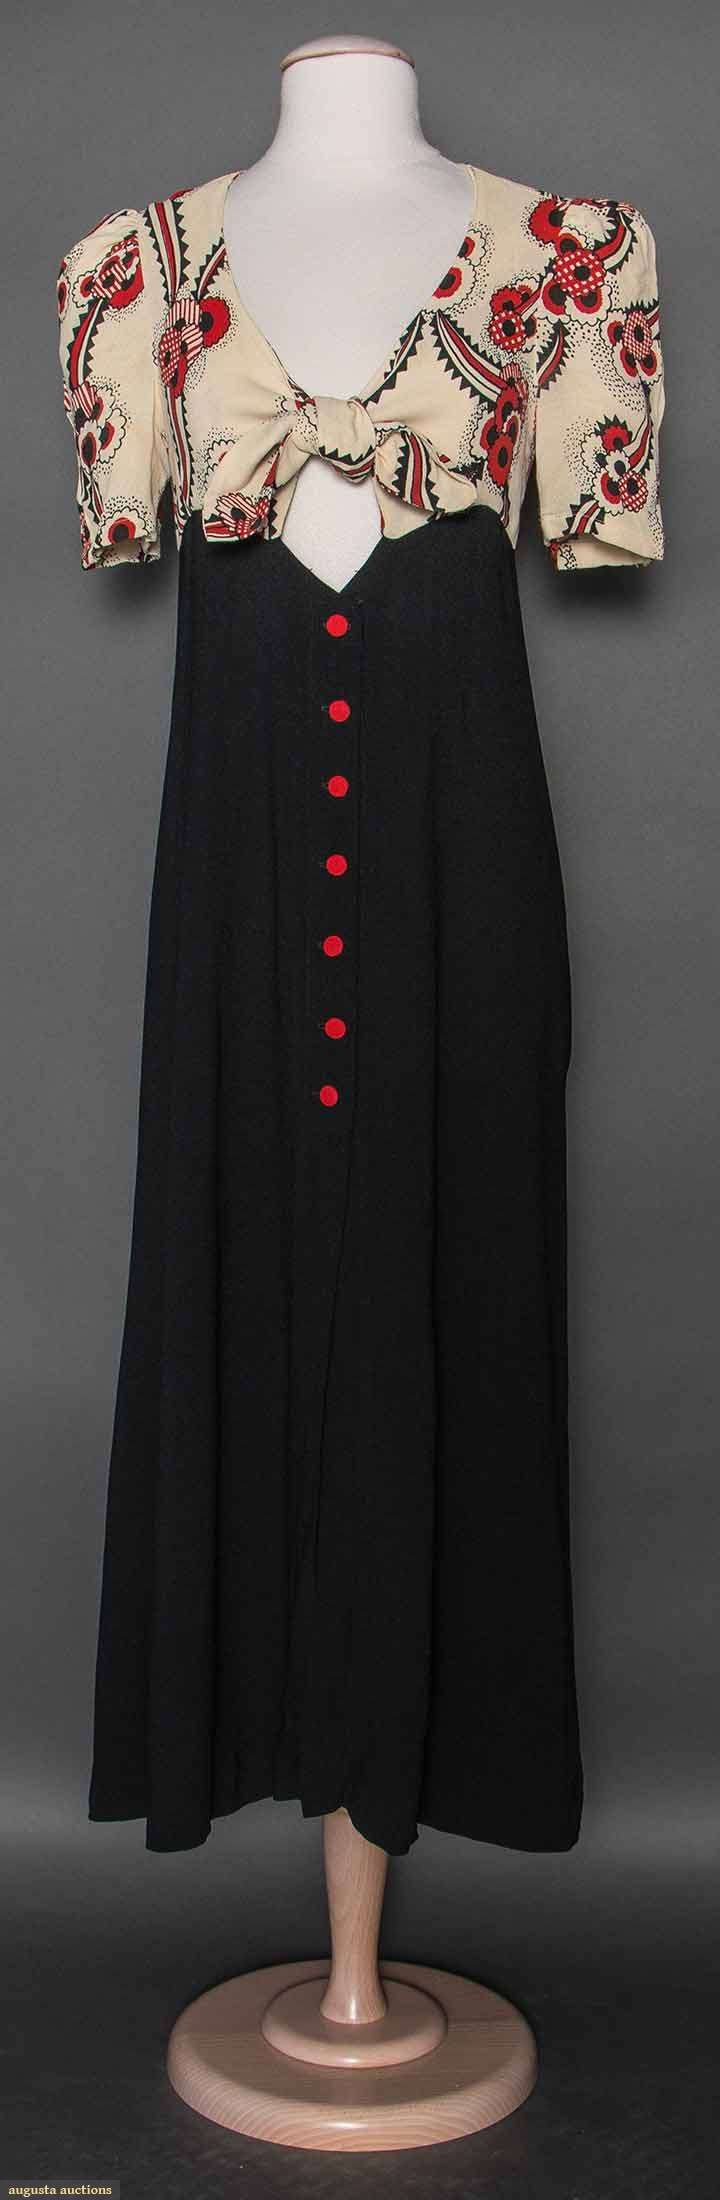 Ossie Clark Printed Dress, Early 1970s, Augusta Auctions, April 8, 2015 NYC, Lot 66